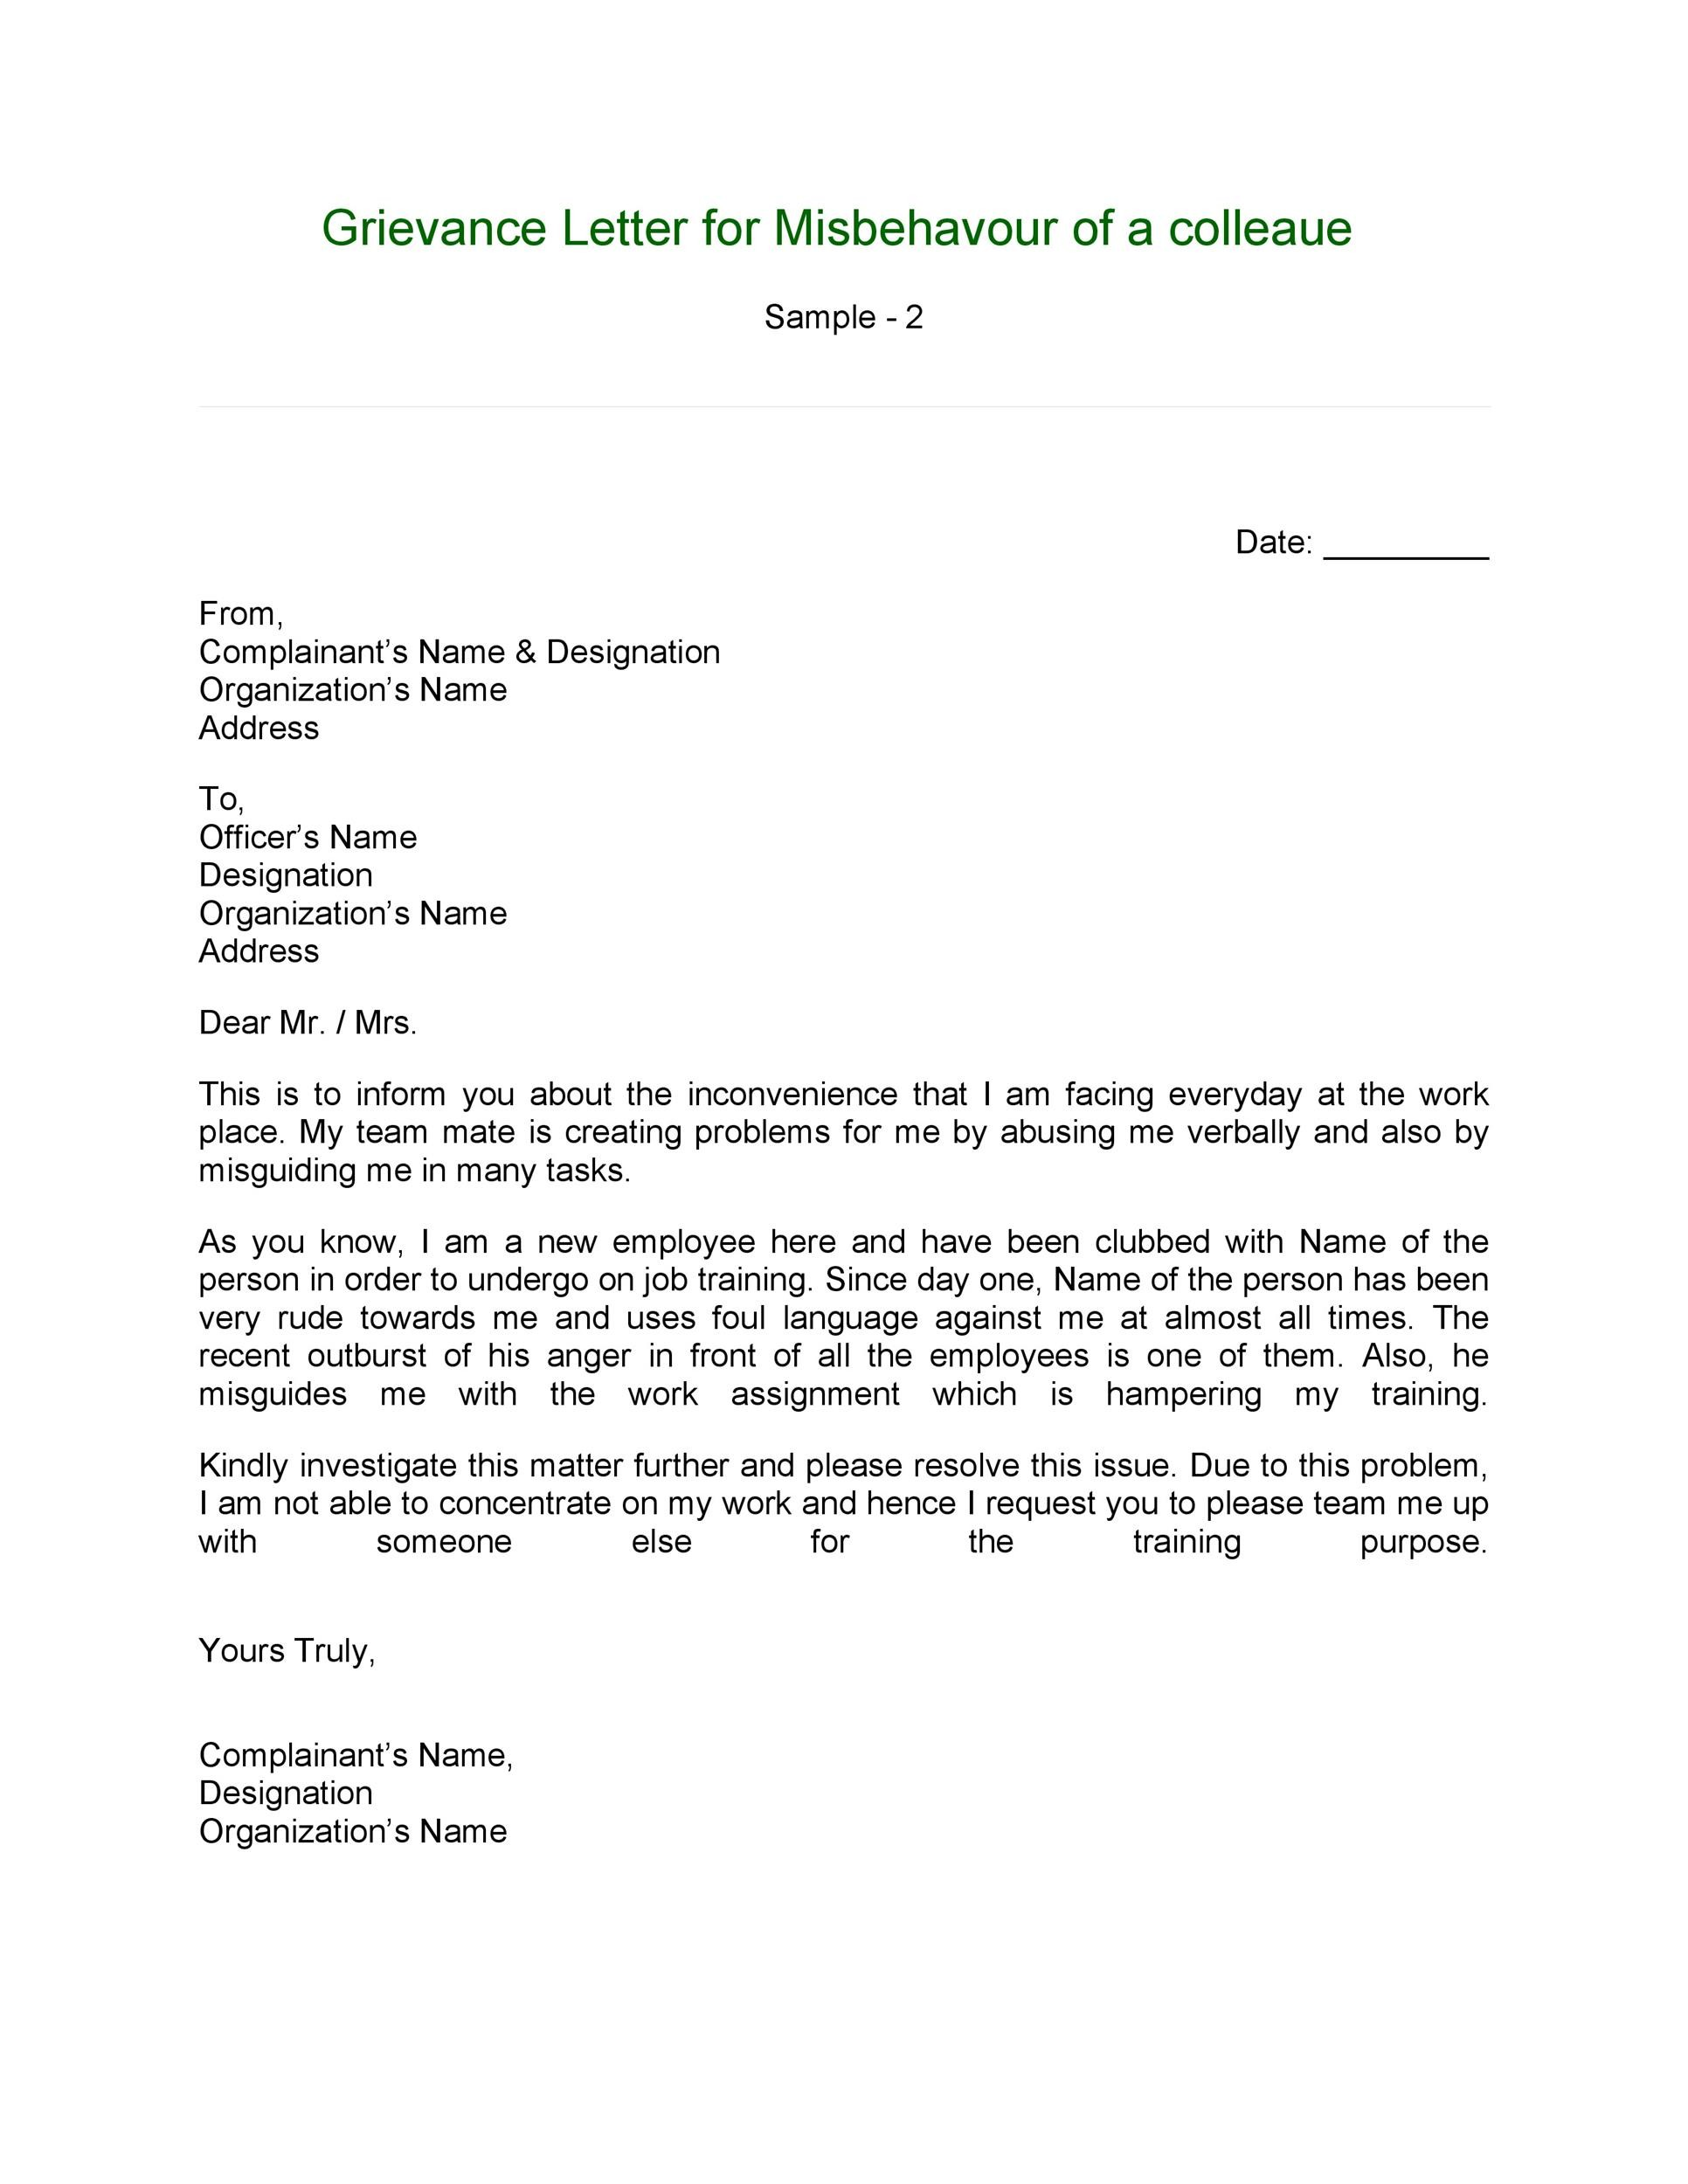 Free grievance letter 02